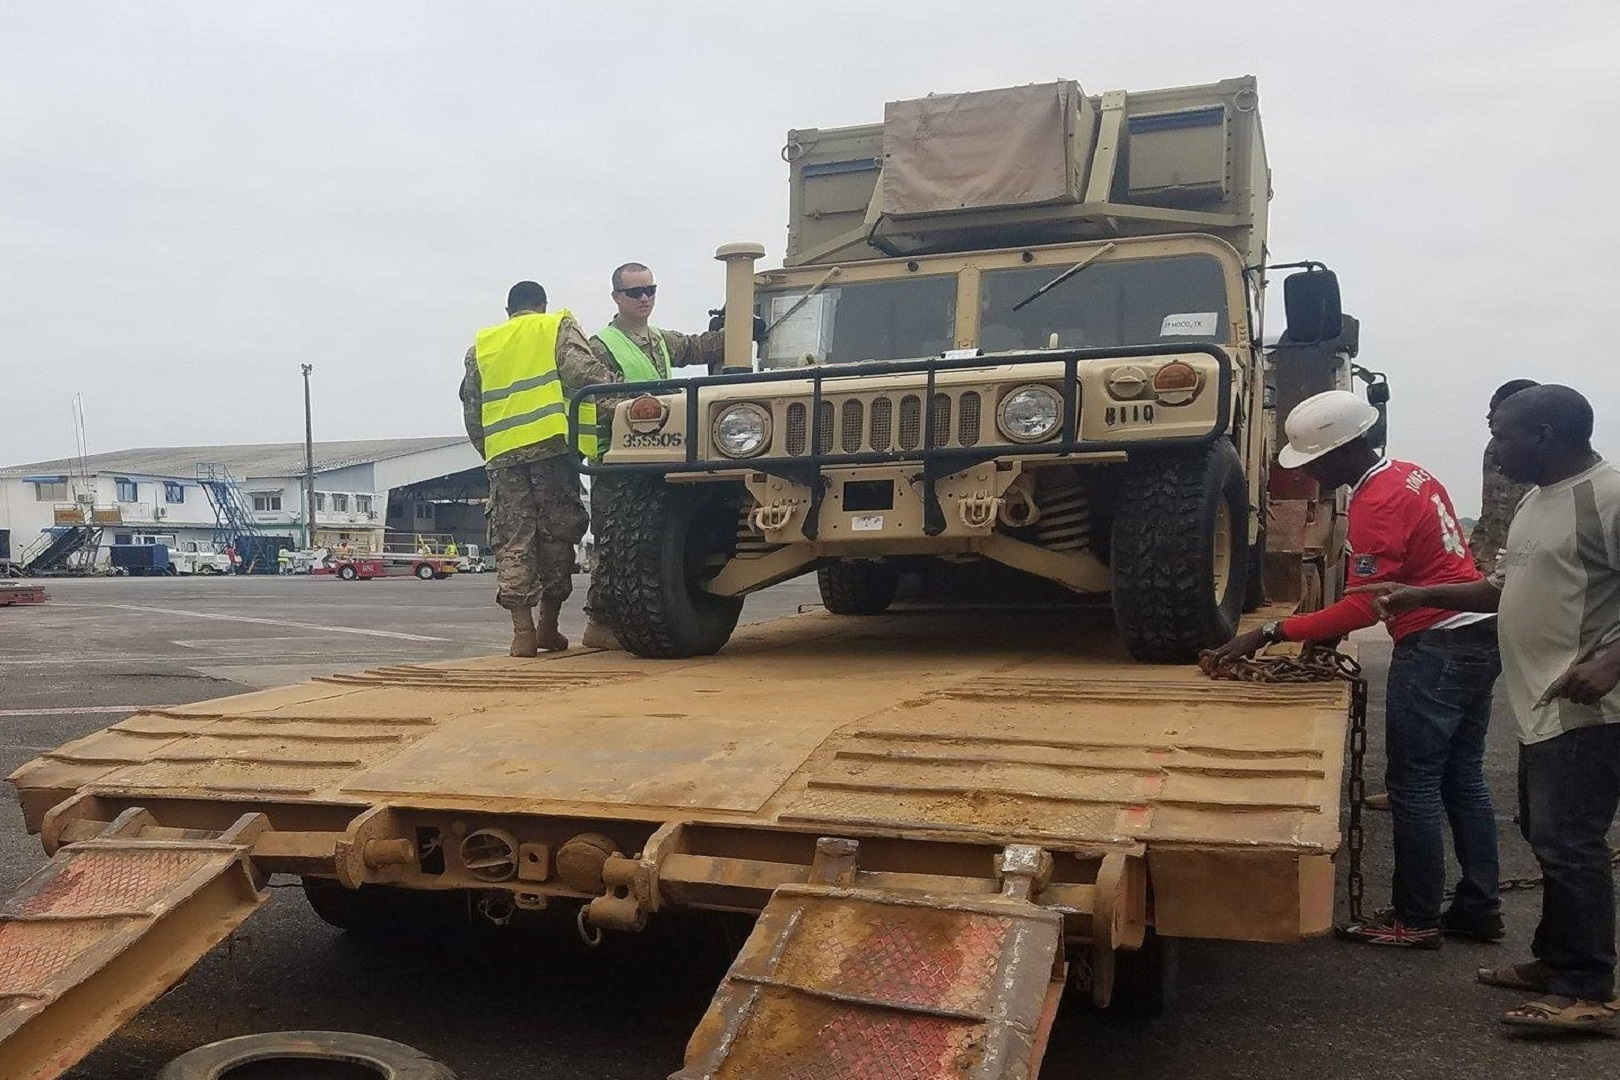 383rd Movement Control Team's Sgt. Scott Hammon inspects a High Mobility Multipurpose Wheeled Vehicle before it departs an African flight-line.  The 383rd MCT is the first MCT assigned to USARAF partnering with French allies and African partners to conduct inspections in Africa before departing on U.S. aircraft. (Photo courtesy of 383rd MCT)